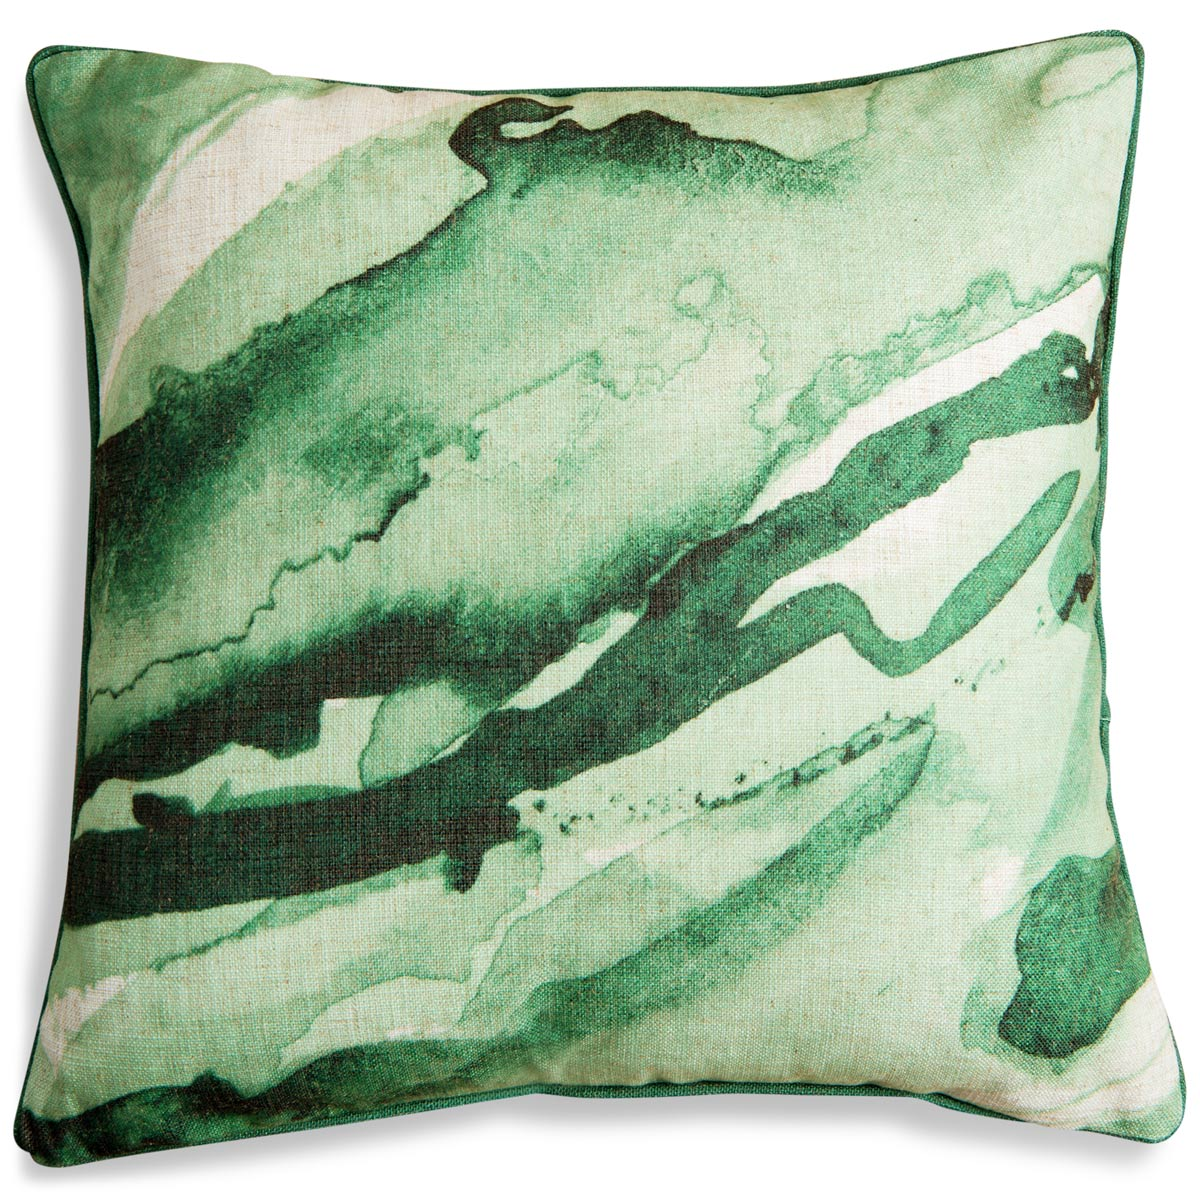 Watercolor Green - ModShop1.com